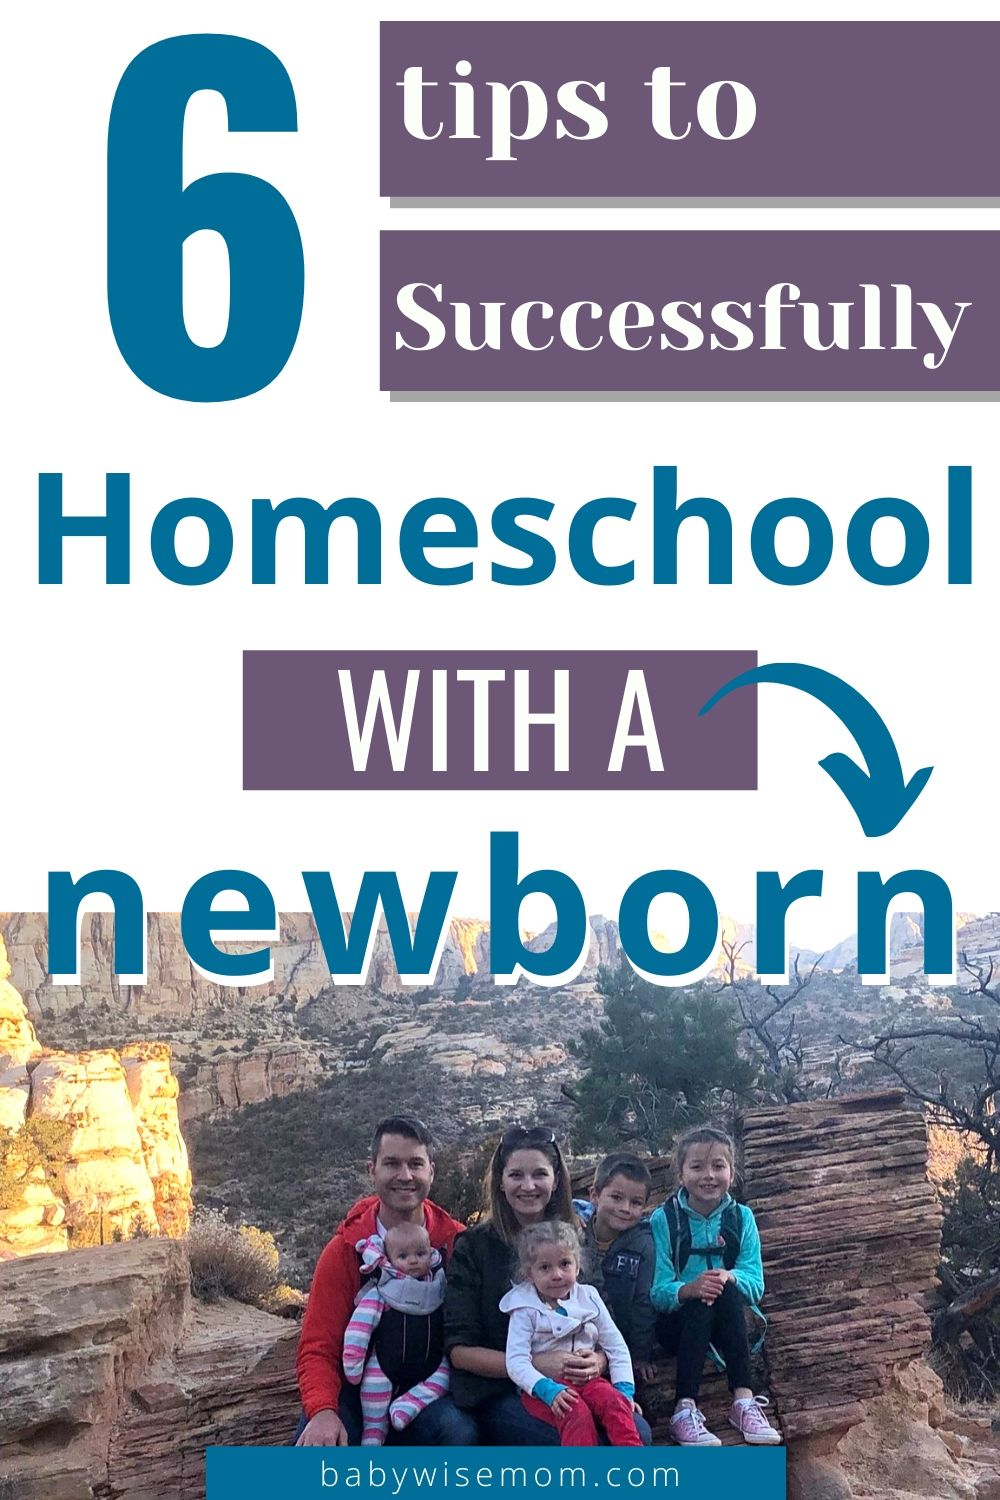 6 tips to homeschool with a newborn